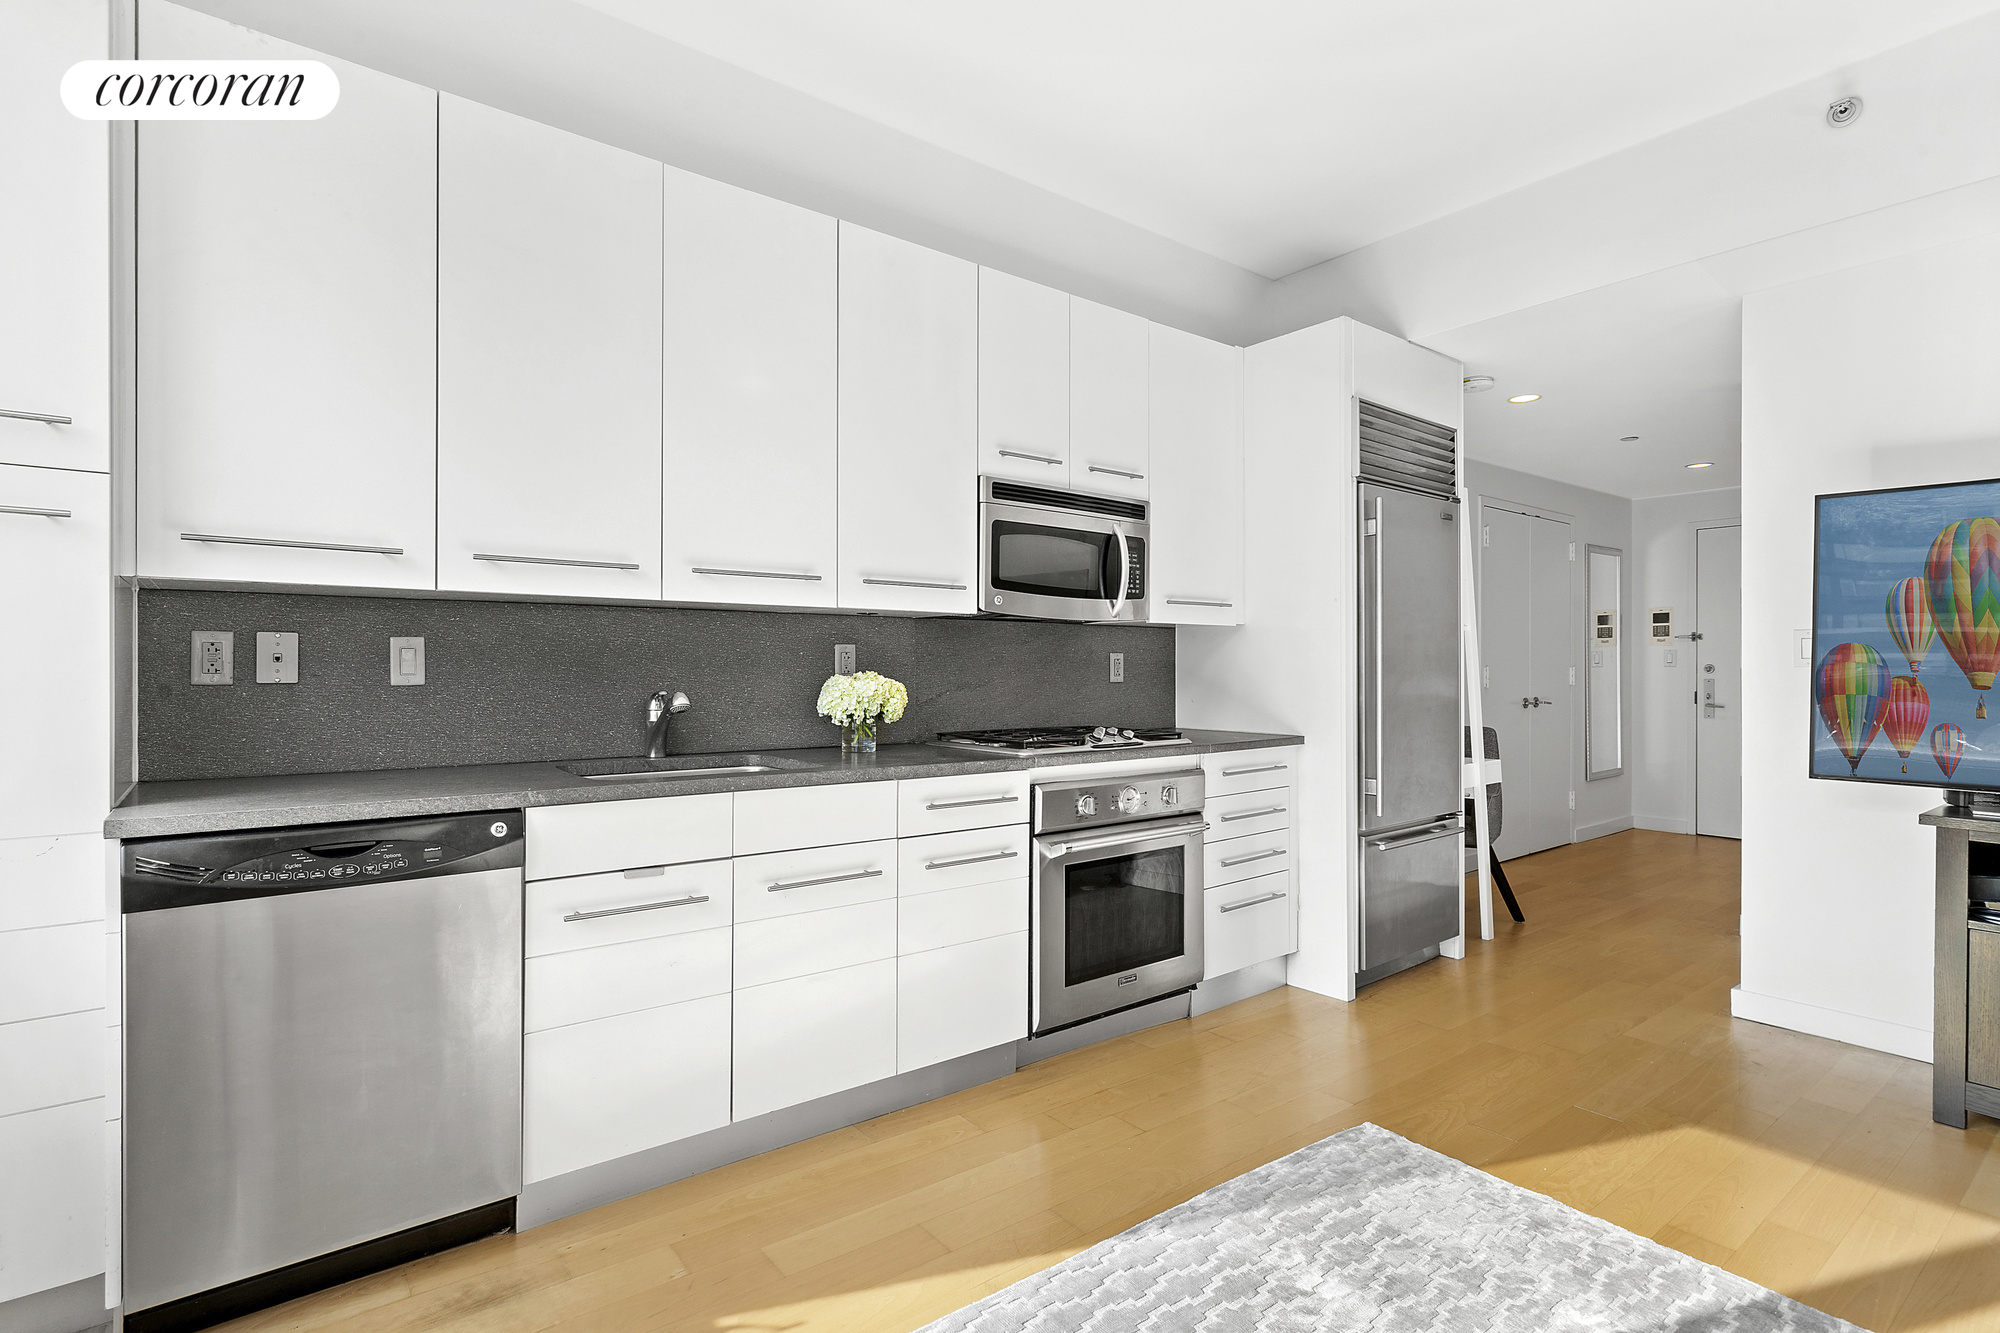 517 West 46th Street, 705, Kitchen